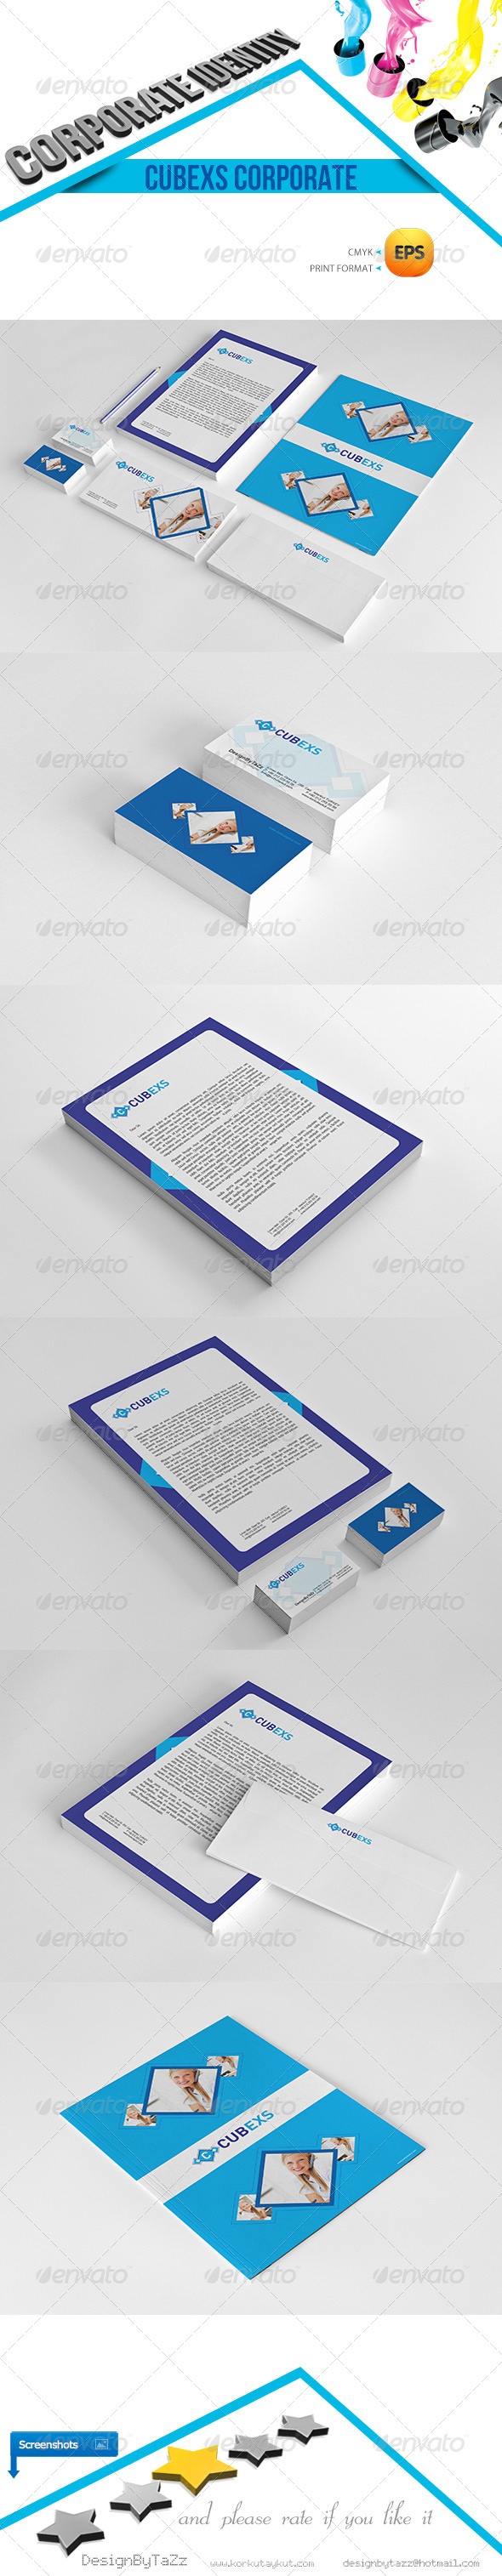 Cubexs Corporate Identity Package